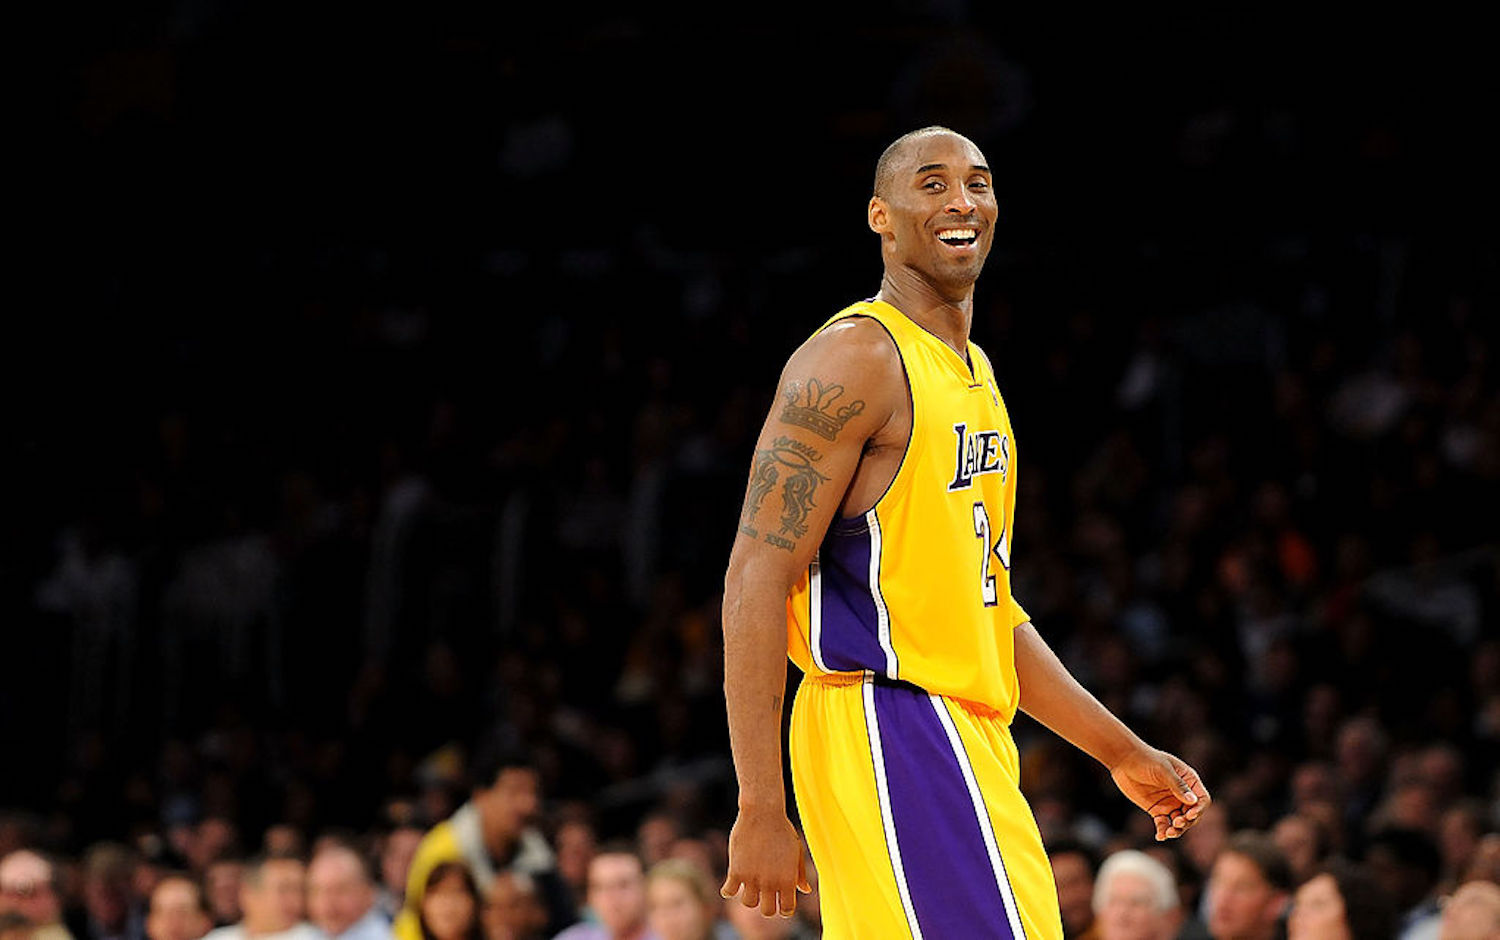 Kobe Bryant was as good a trash talker as he was a scorer in the NBA, and he had the perfect drink order after dropping 81 points in a game.